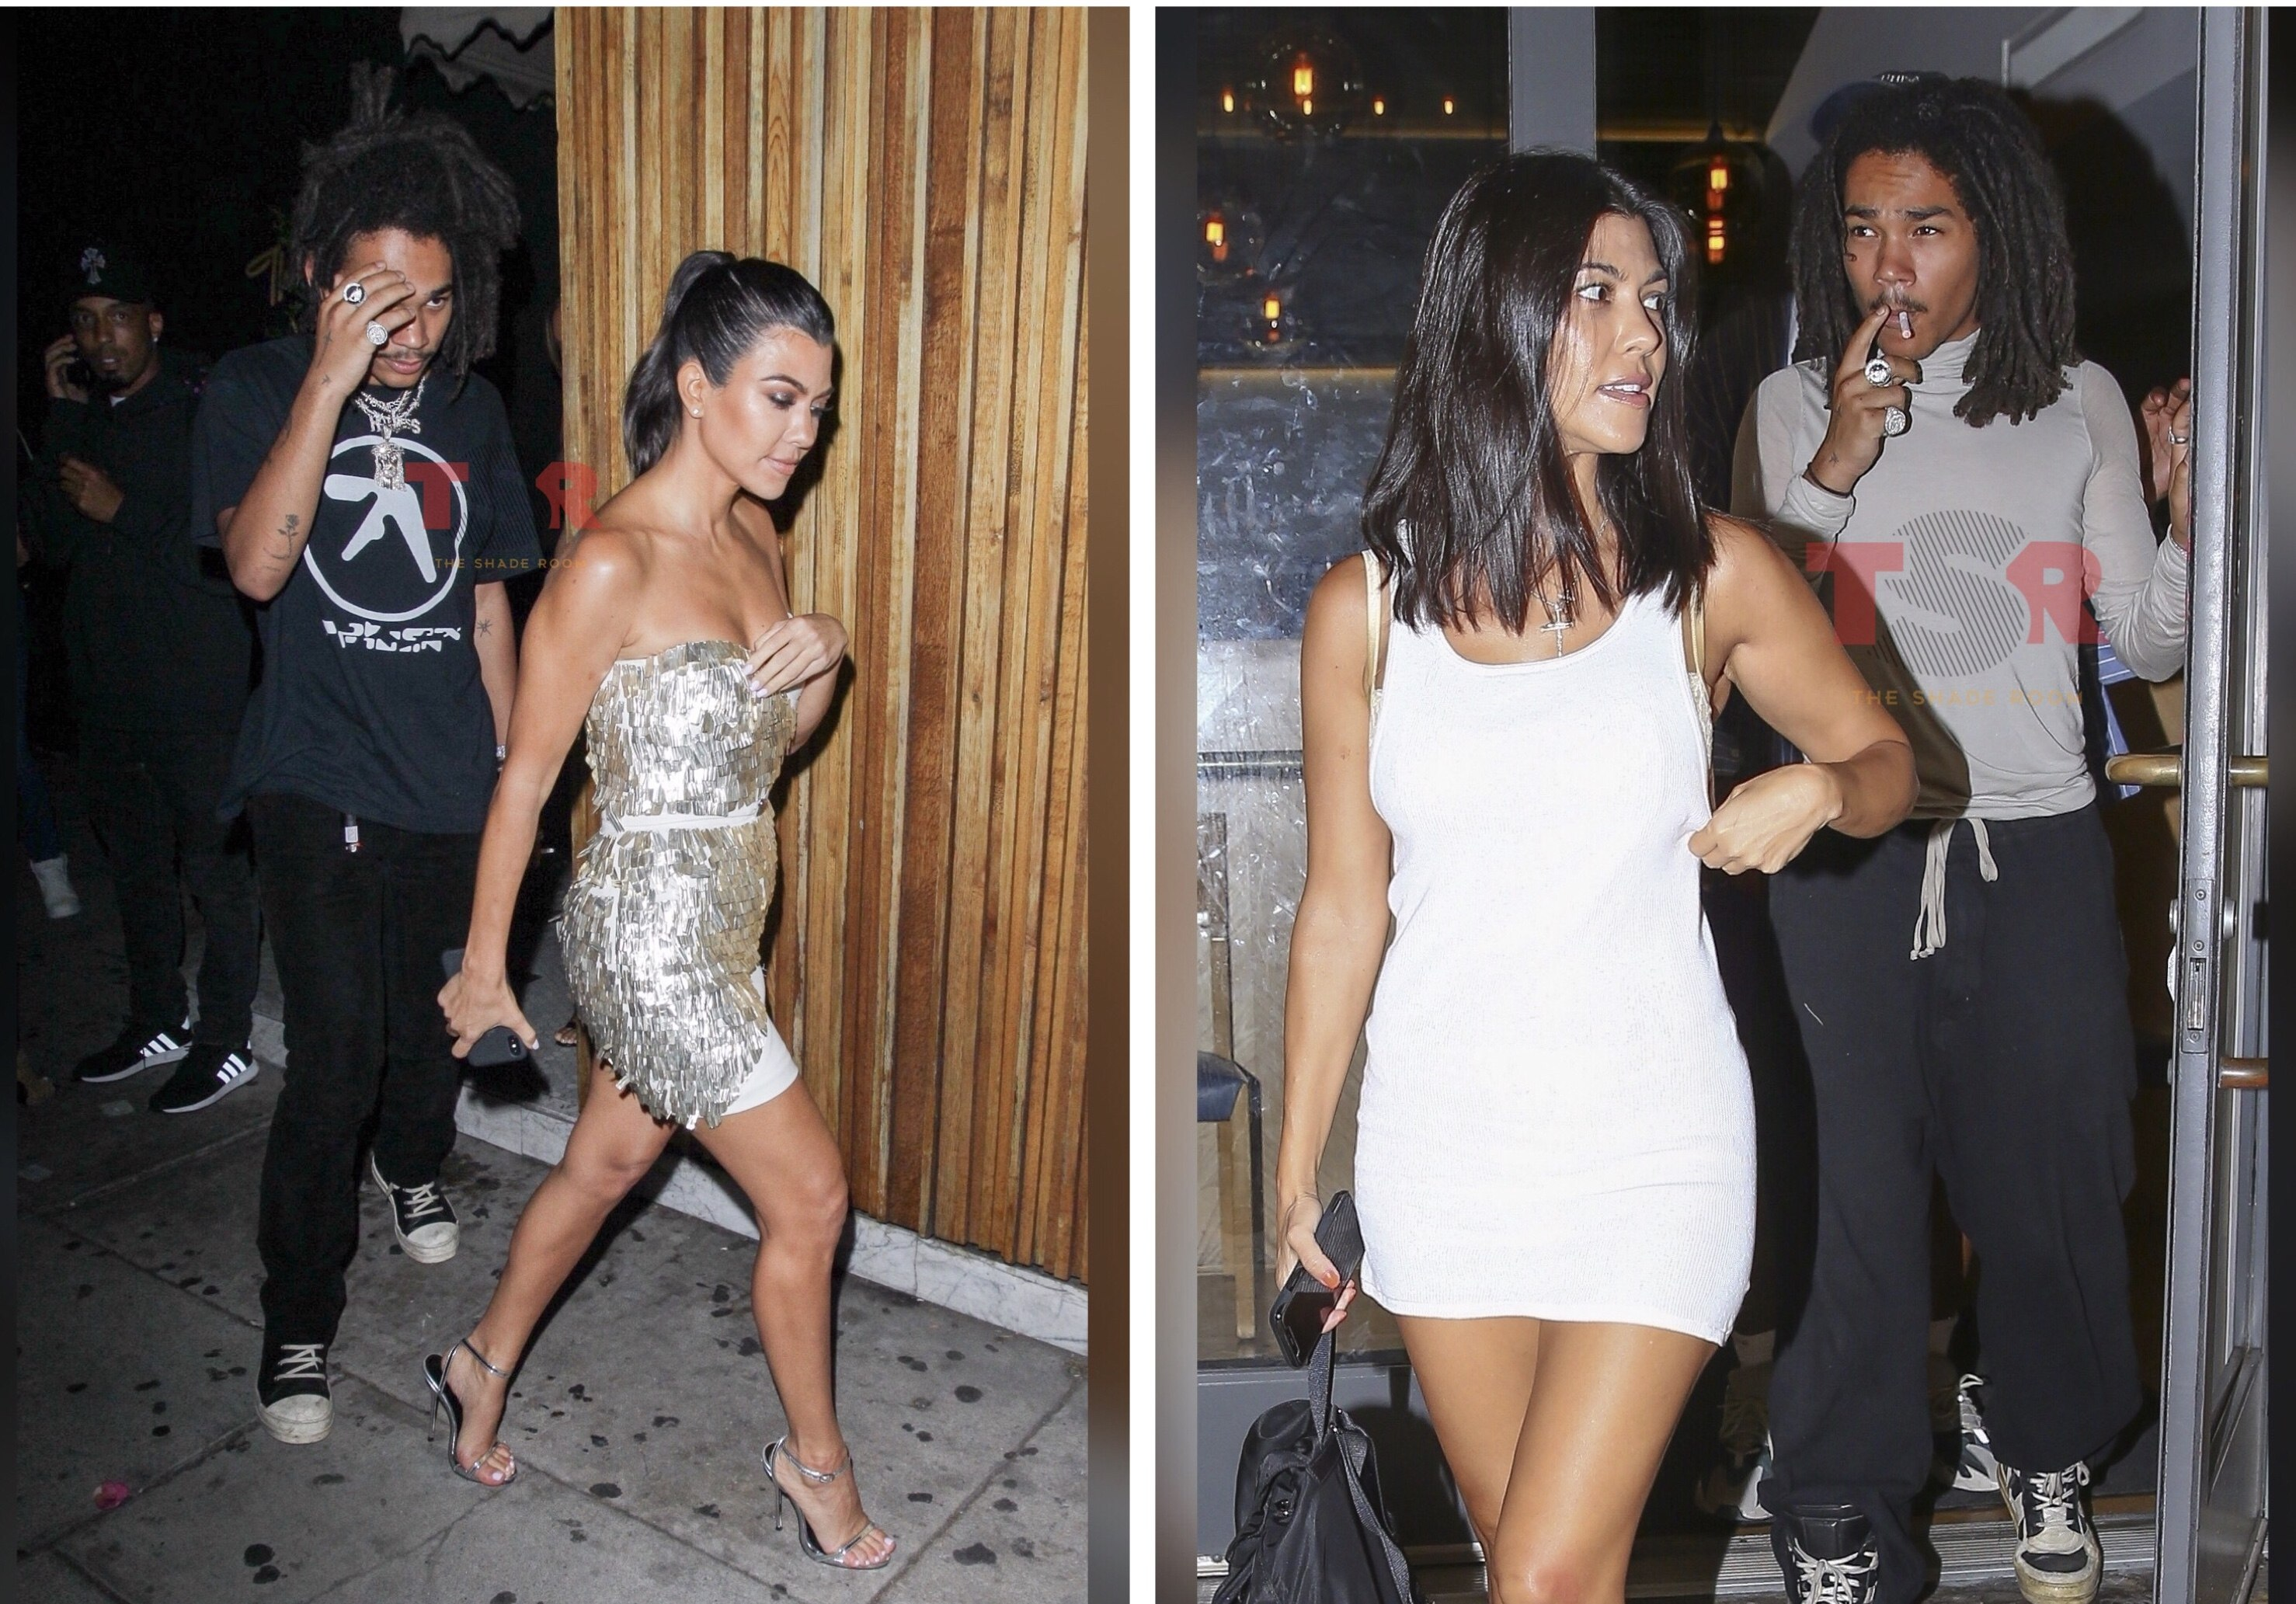 Kourtney Kardashian Is Reportedly Getting Well Acquainted With 20-Year-Old Actor Luka Sabbat